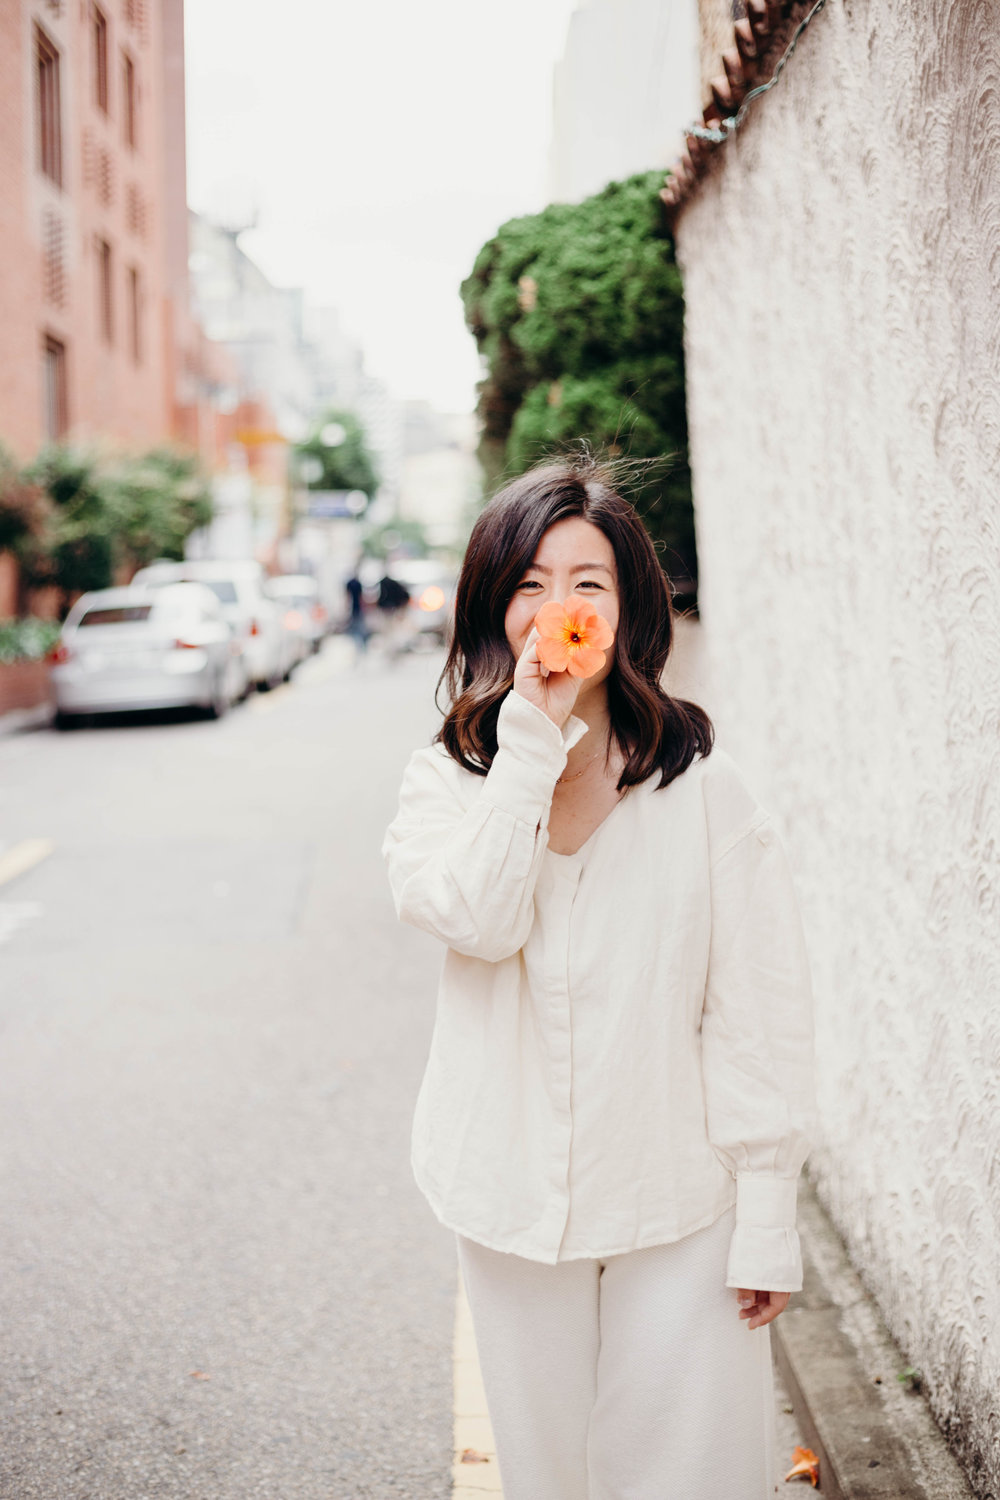 The Most Worn Item in My Wardrobe | On the Street Where We Live ( aretherelilactrees.com )  MANGO, neutrals, summer style, Seoul, orange flowers